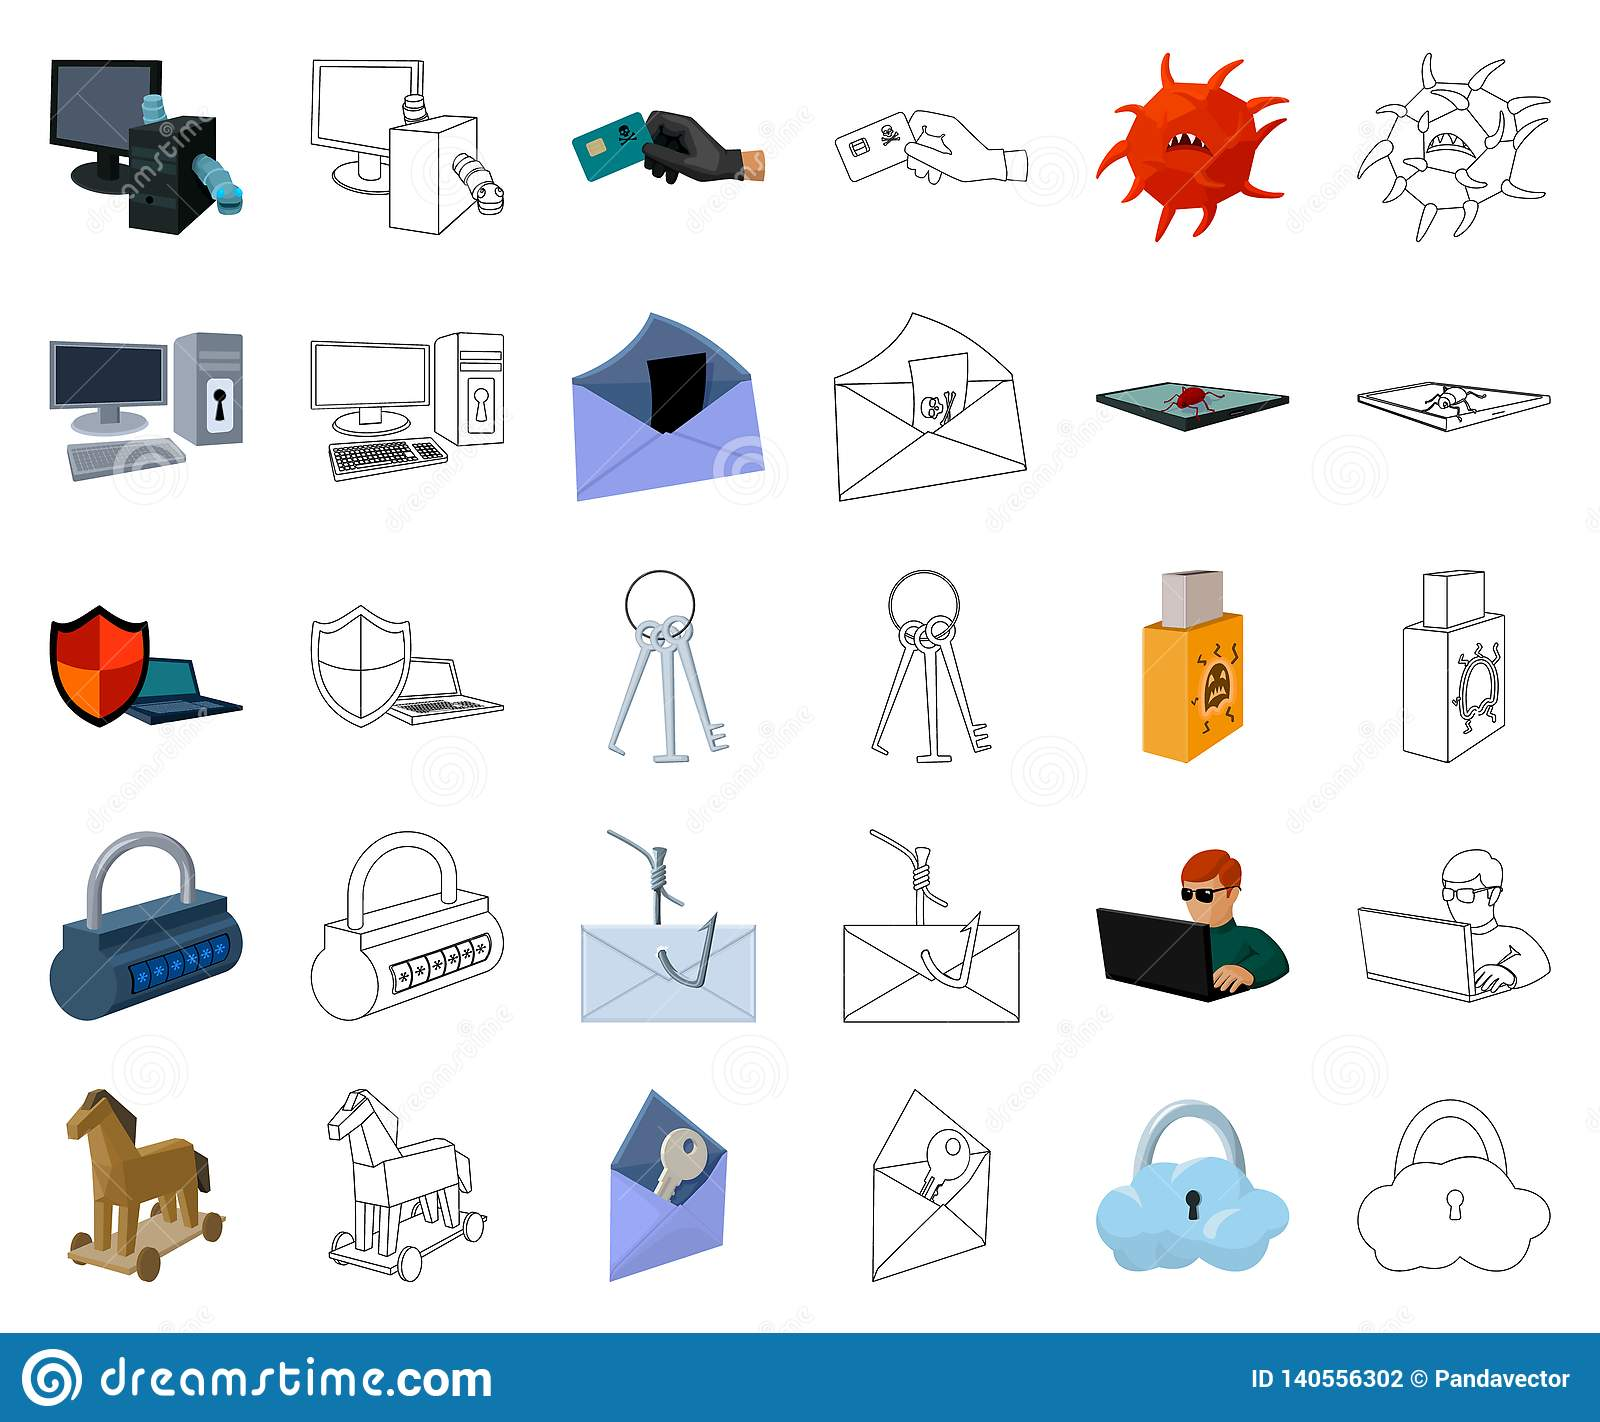 Hacker and hacking cartoon,outline icons in set collection for design. Hacker and equipment vector symbol stock web